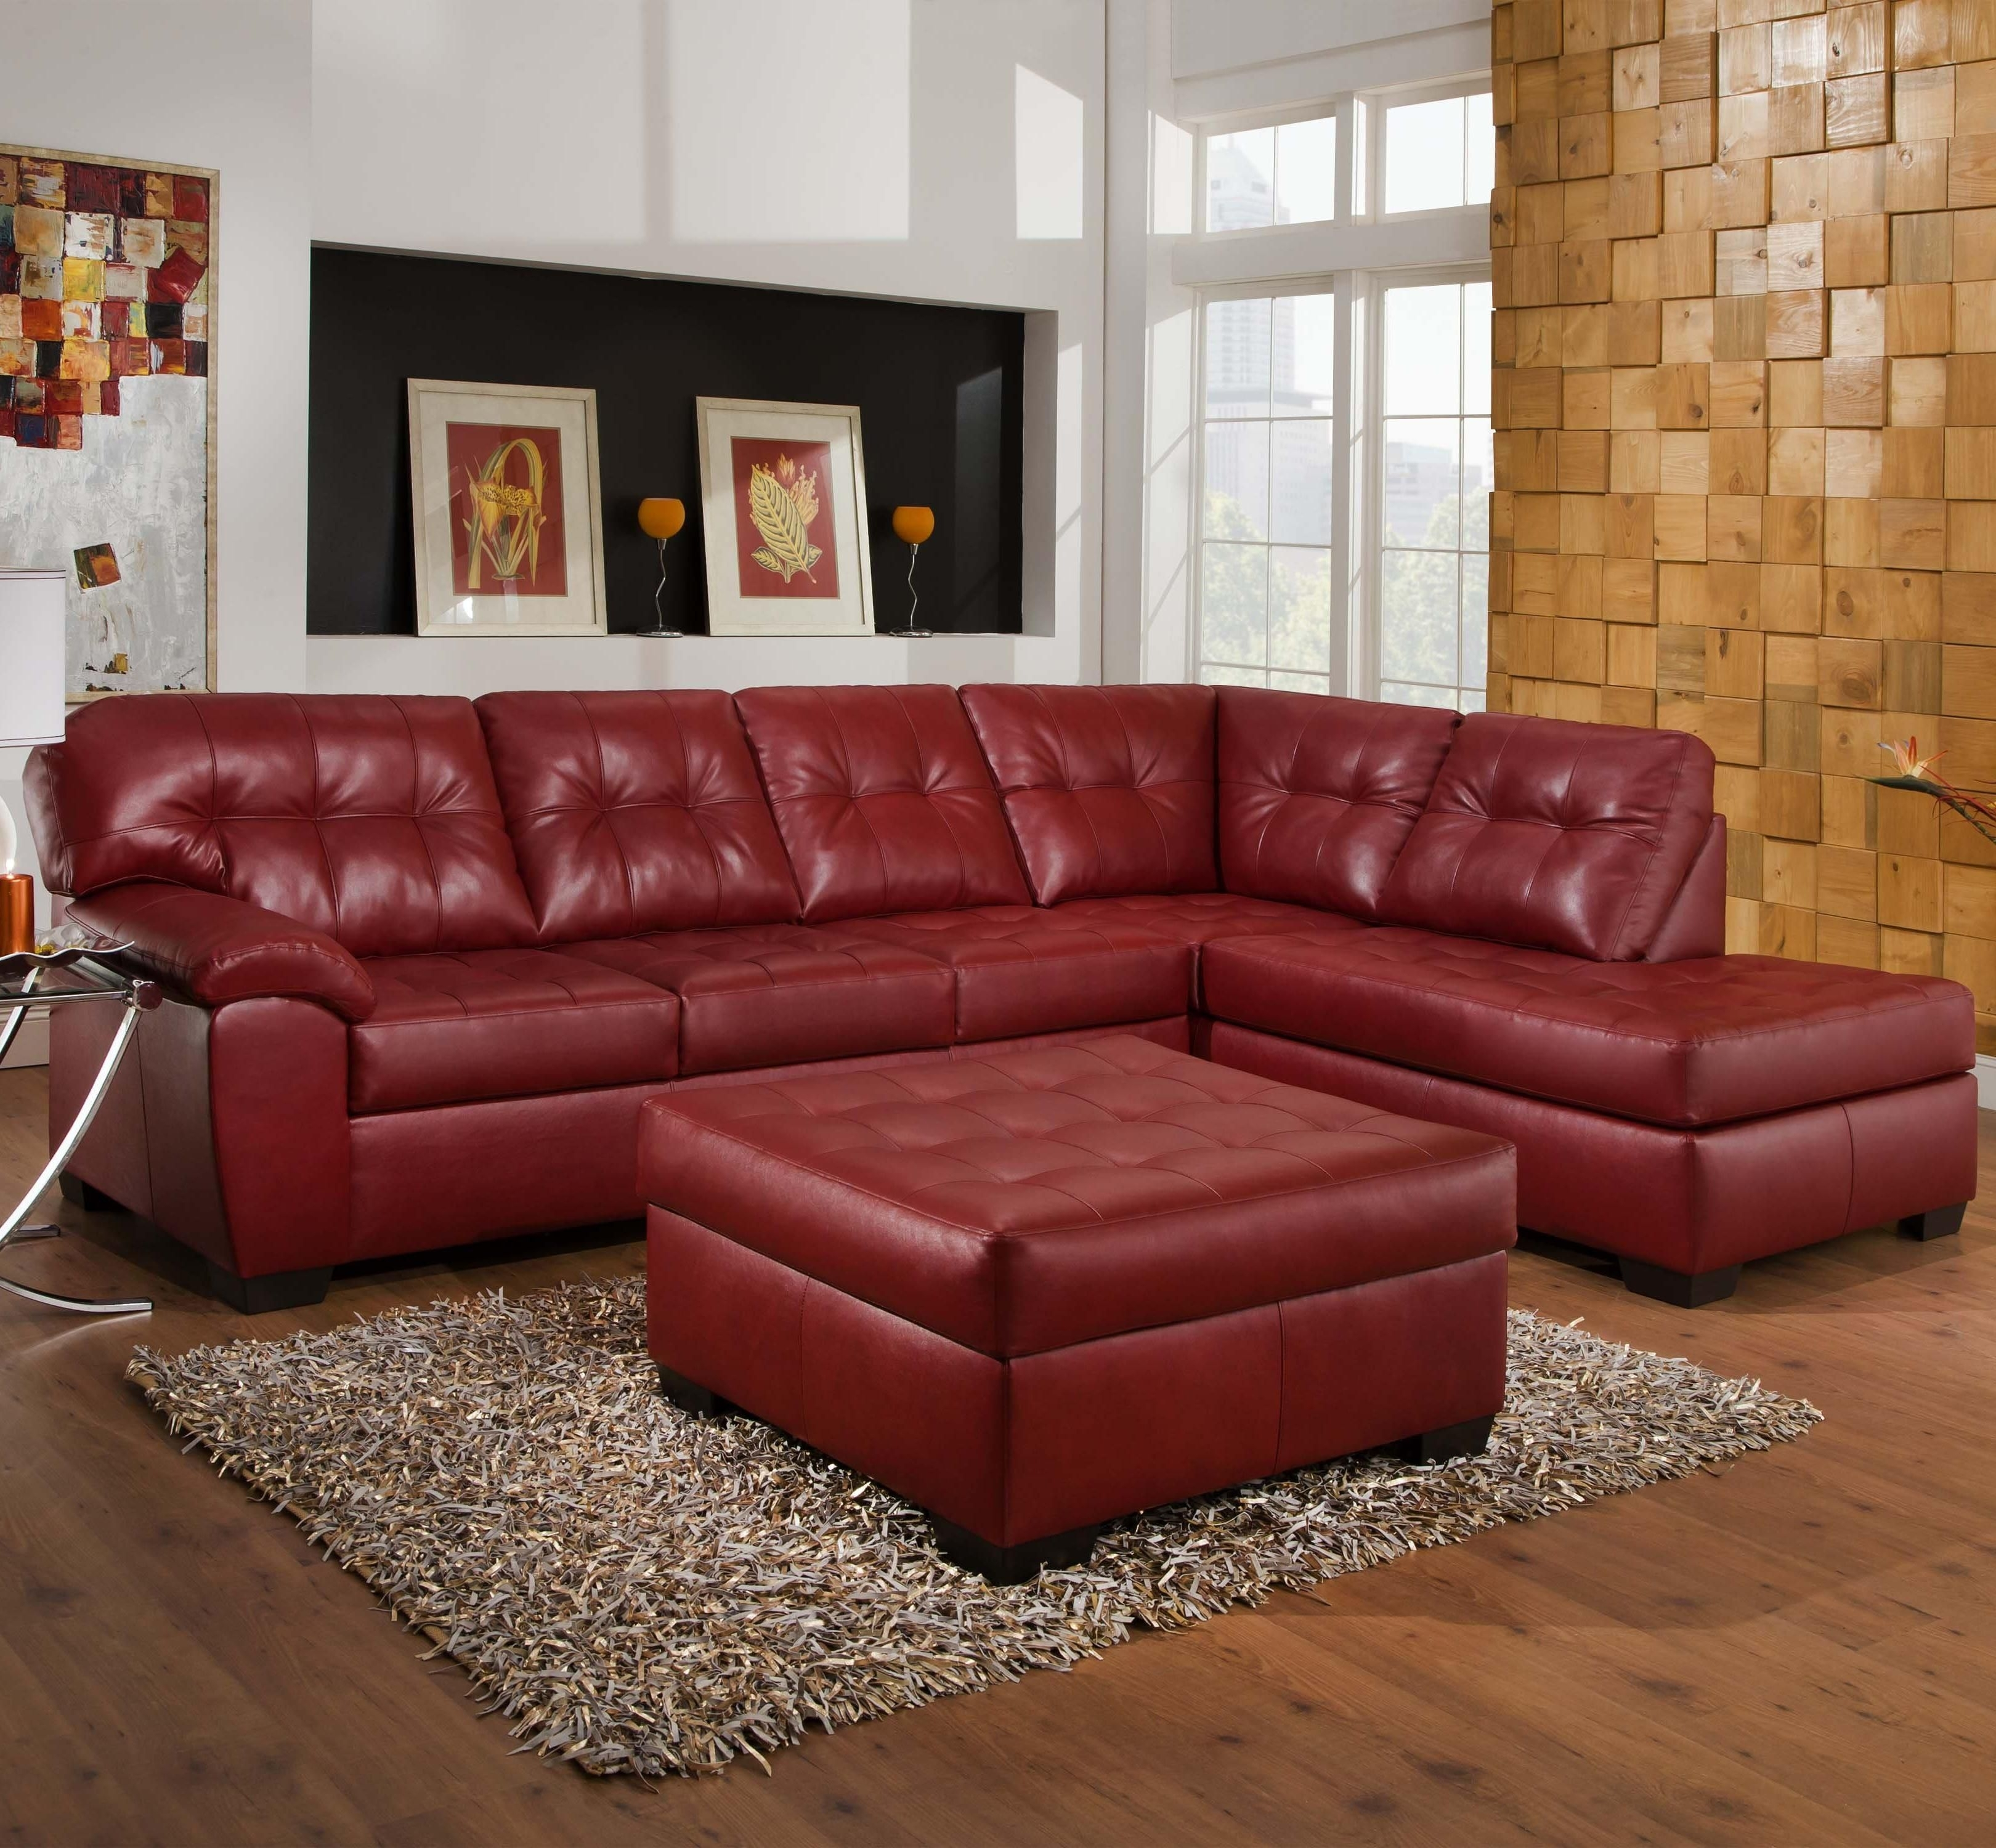 9569 2 Piece Sectional With Tufted Seats & Backsimmons inside Royal Furniture Sectional Sofas